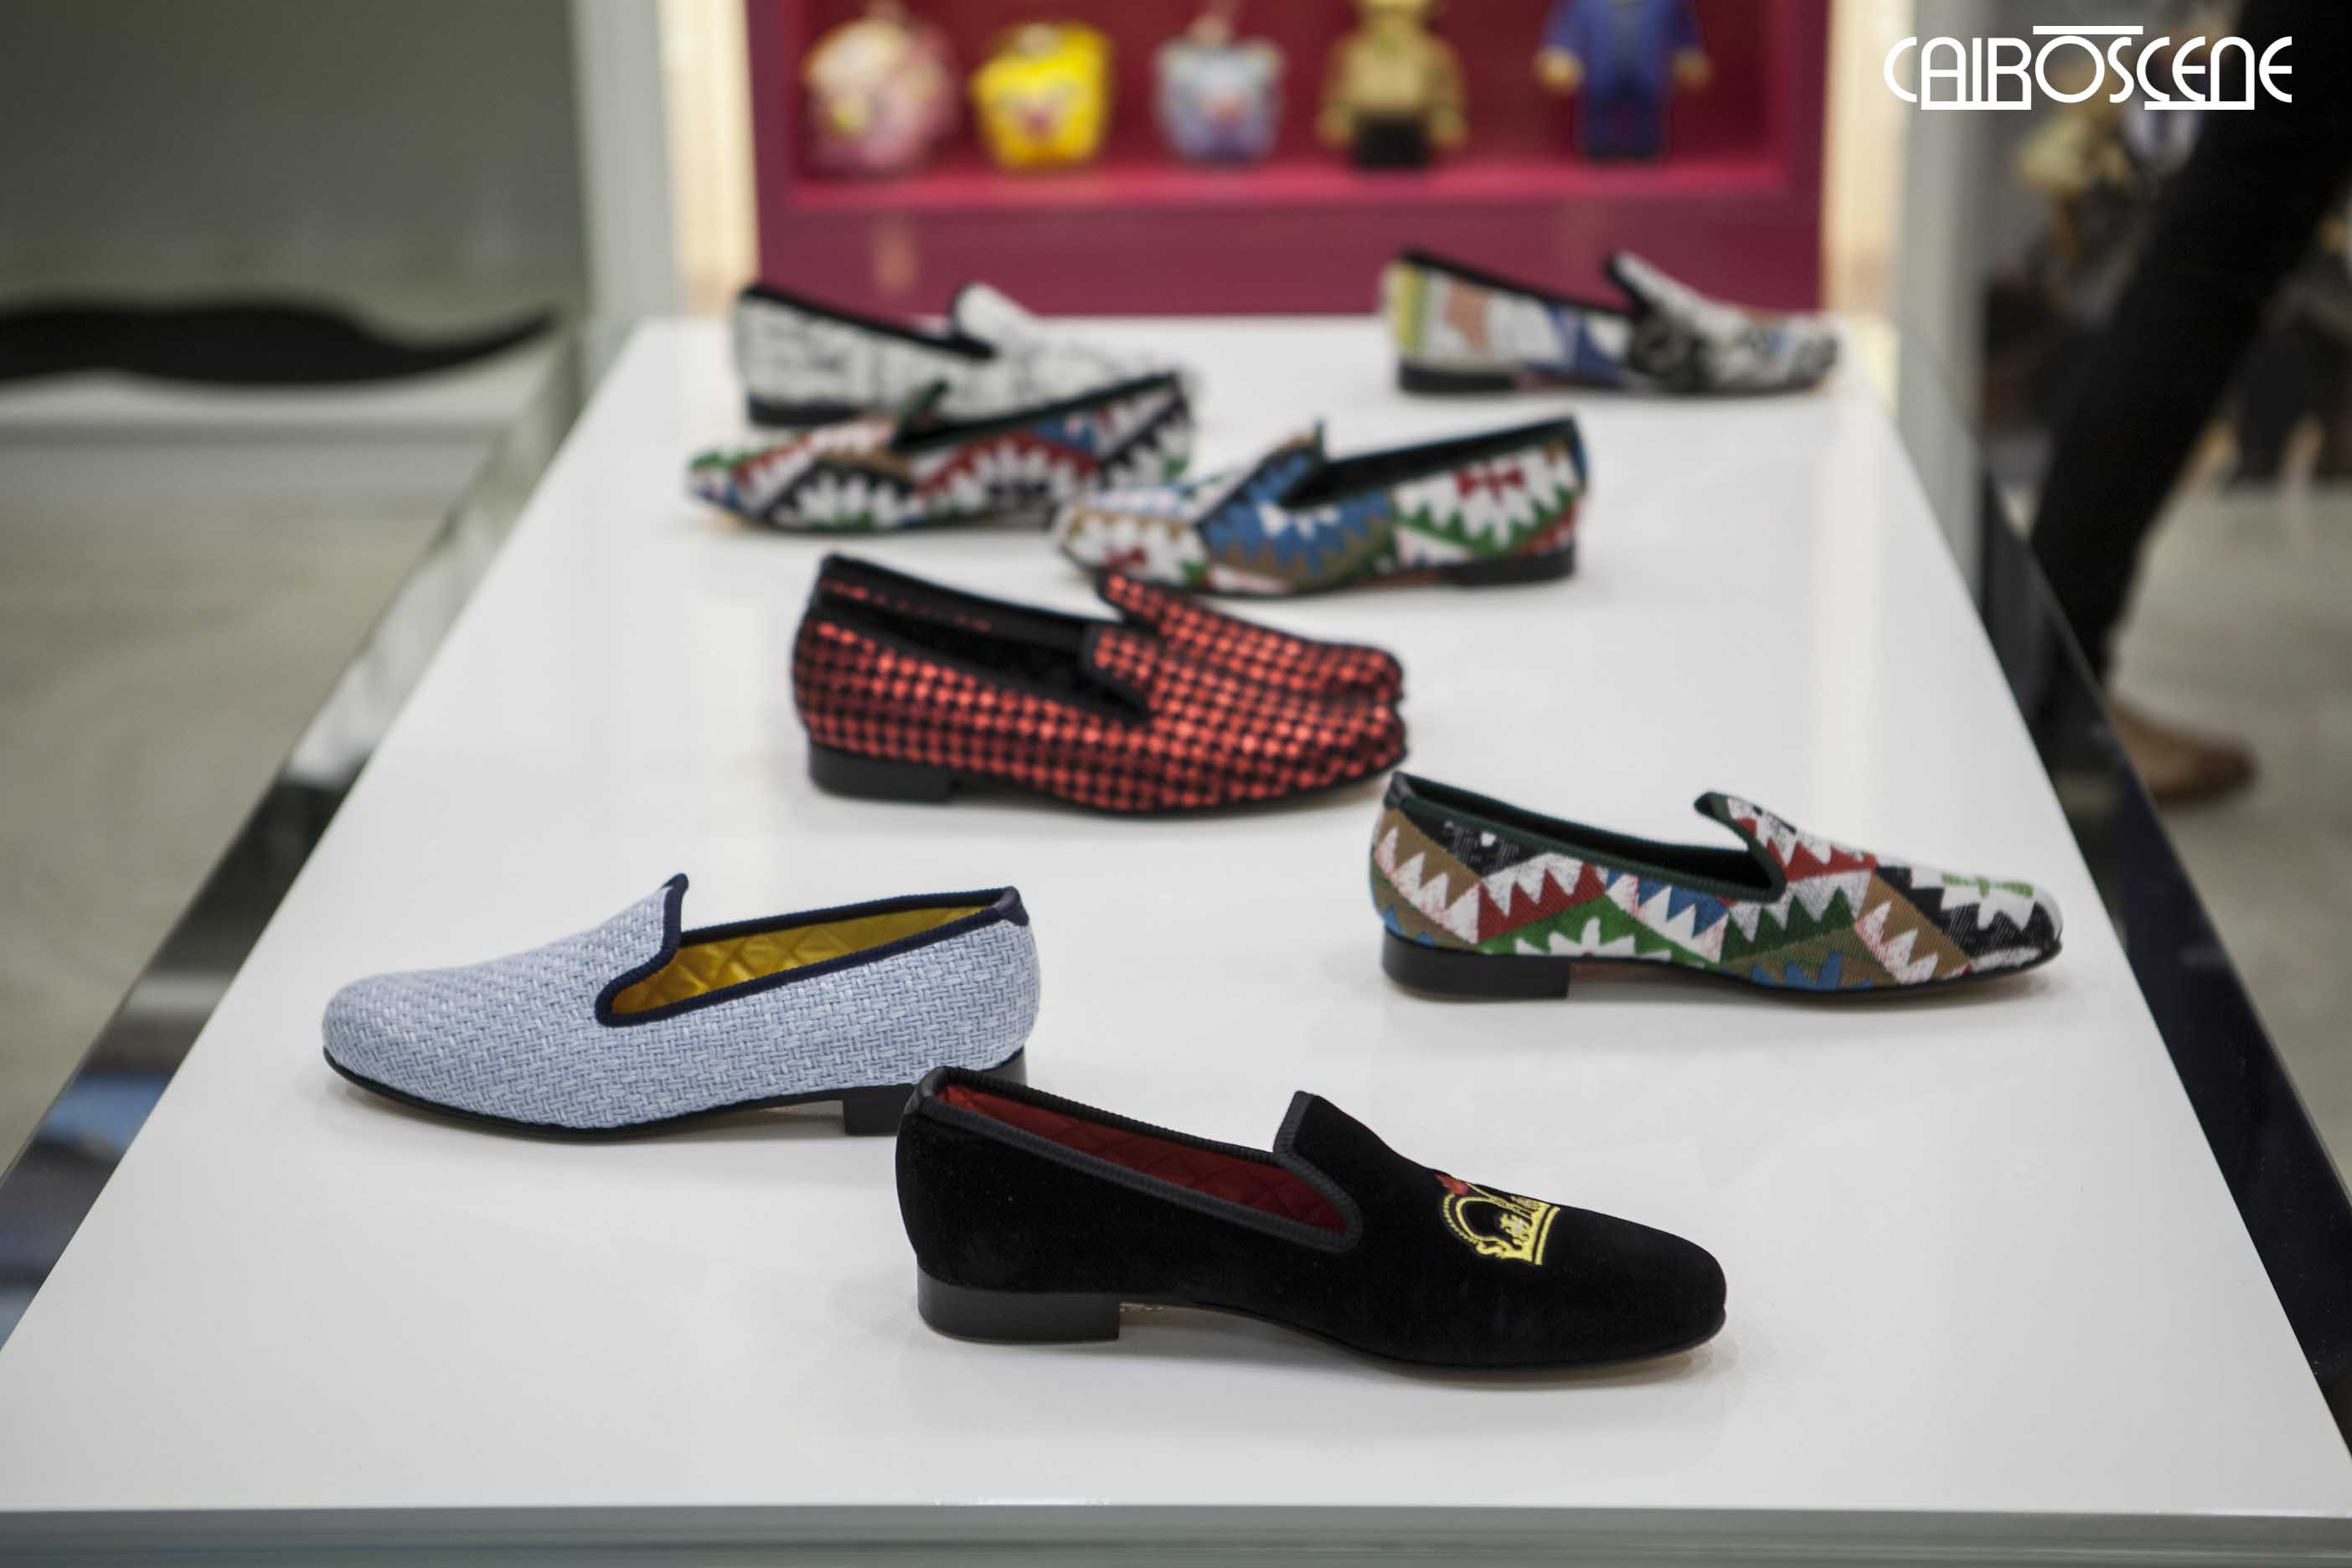 Maksters: A Shoe with a Story